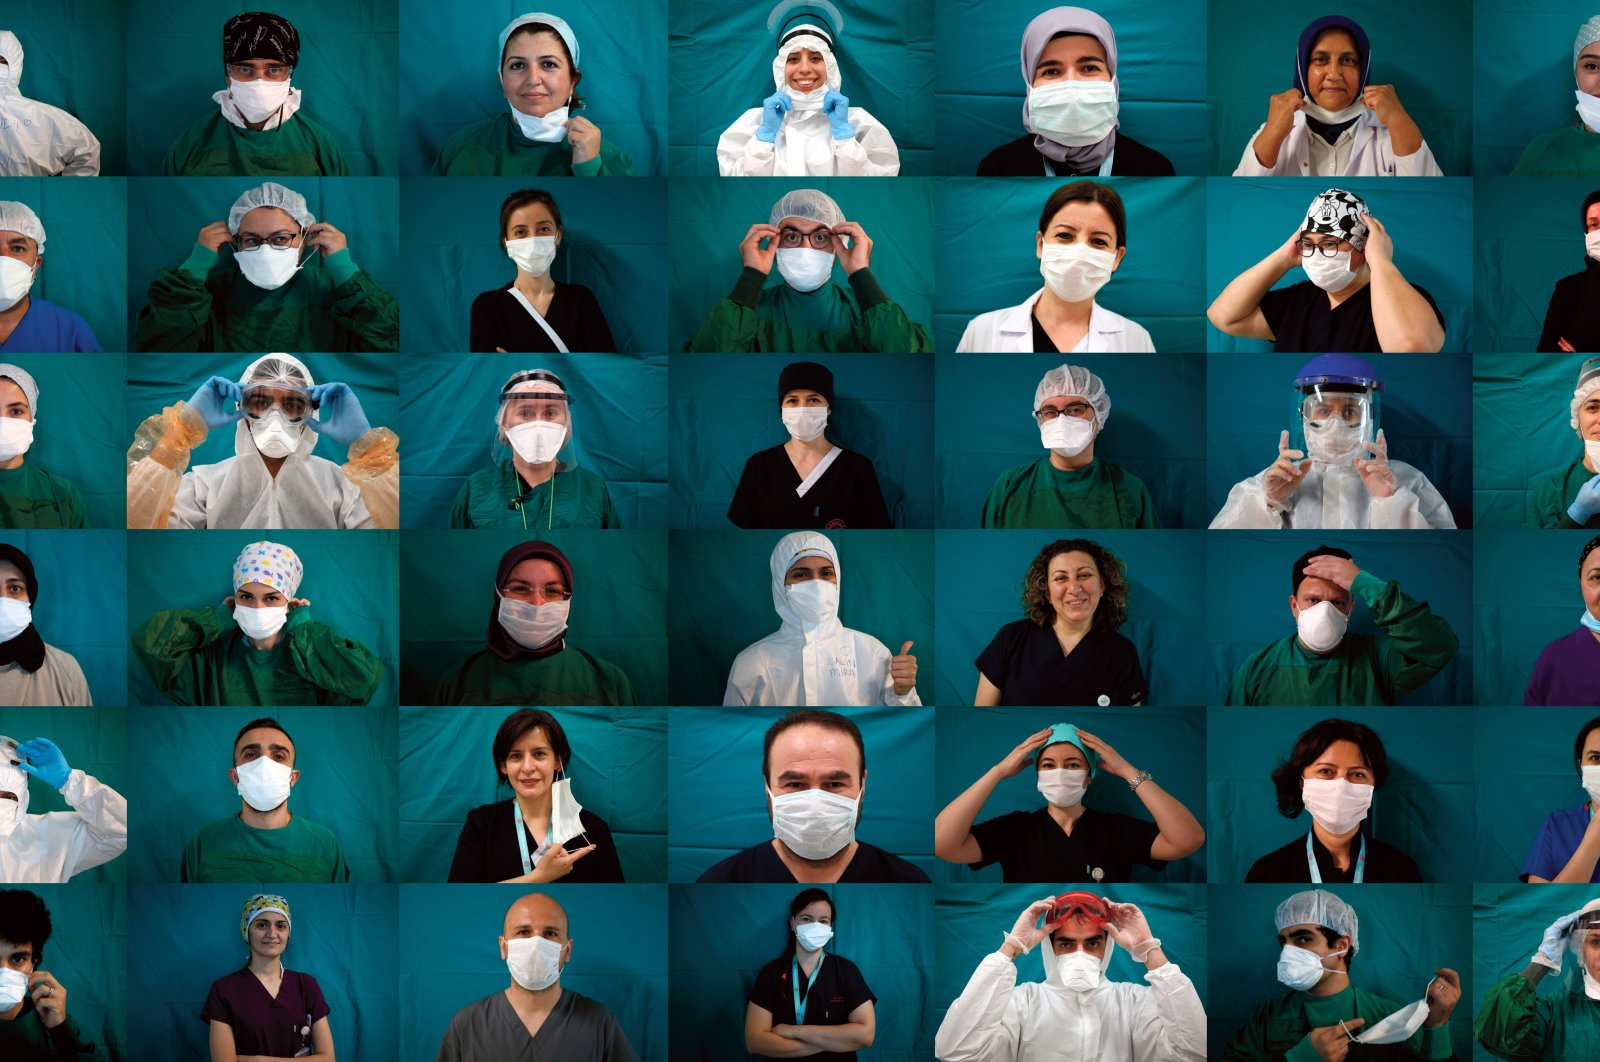 Several healthcare workers pose for a collage to mark Turkey's national Medicine Day in Bursa, Turkey, March 14, 2021. (IHA Photo)